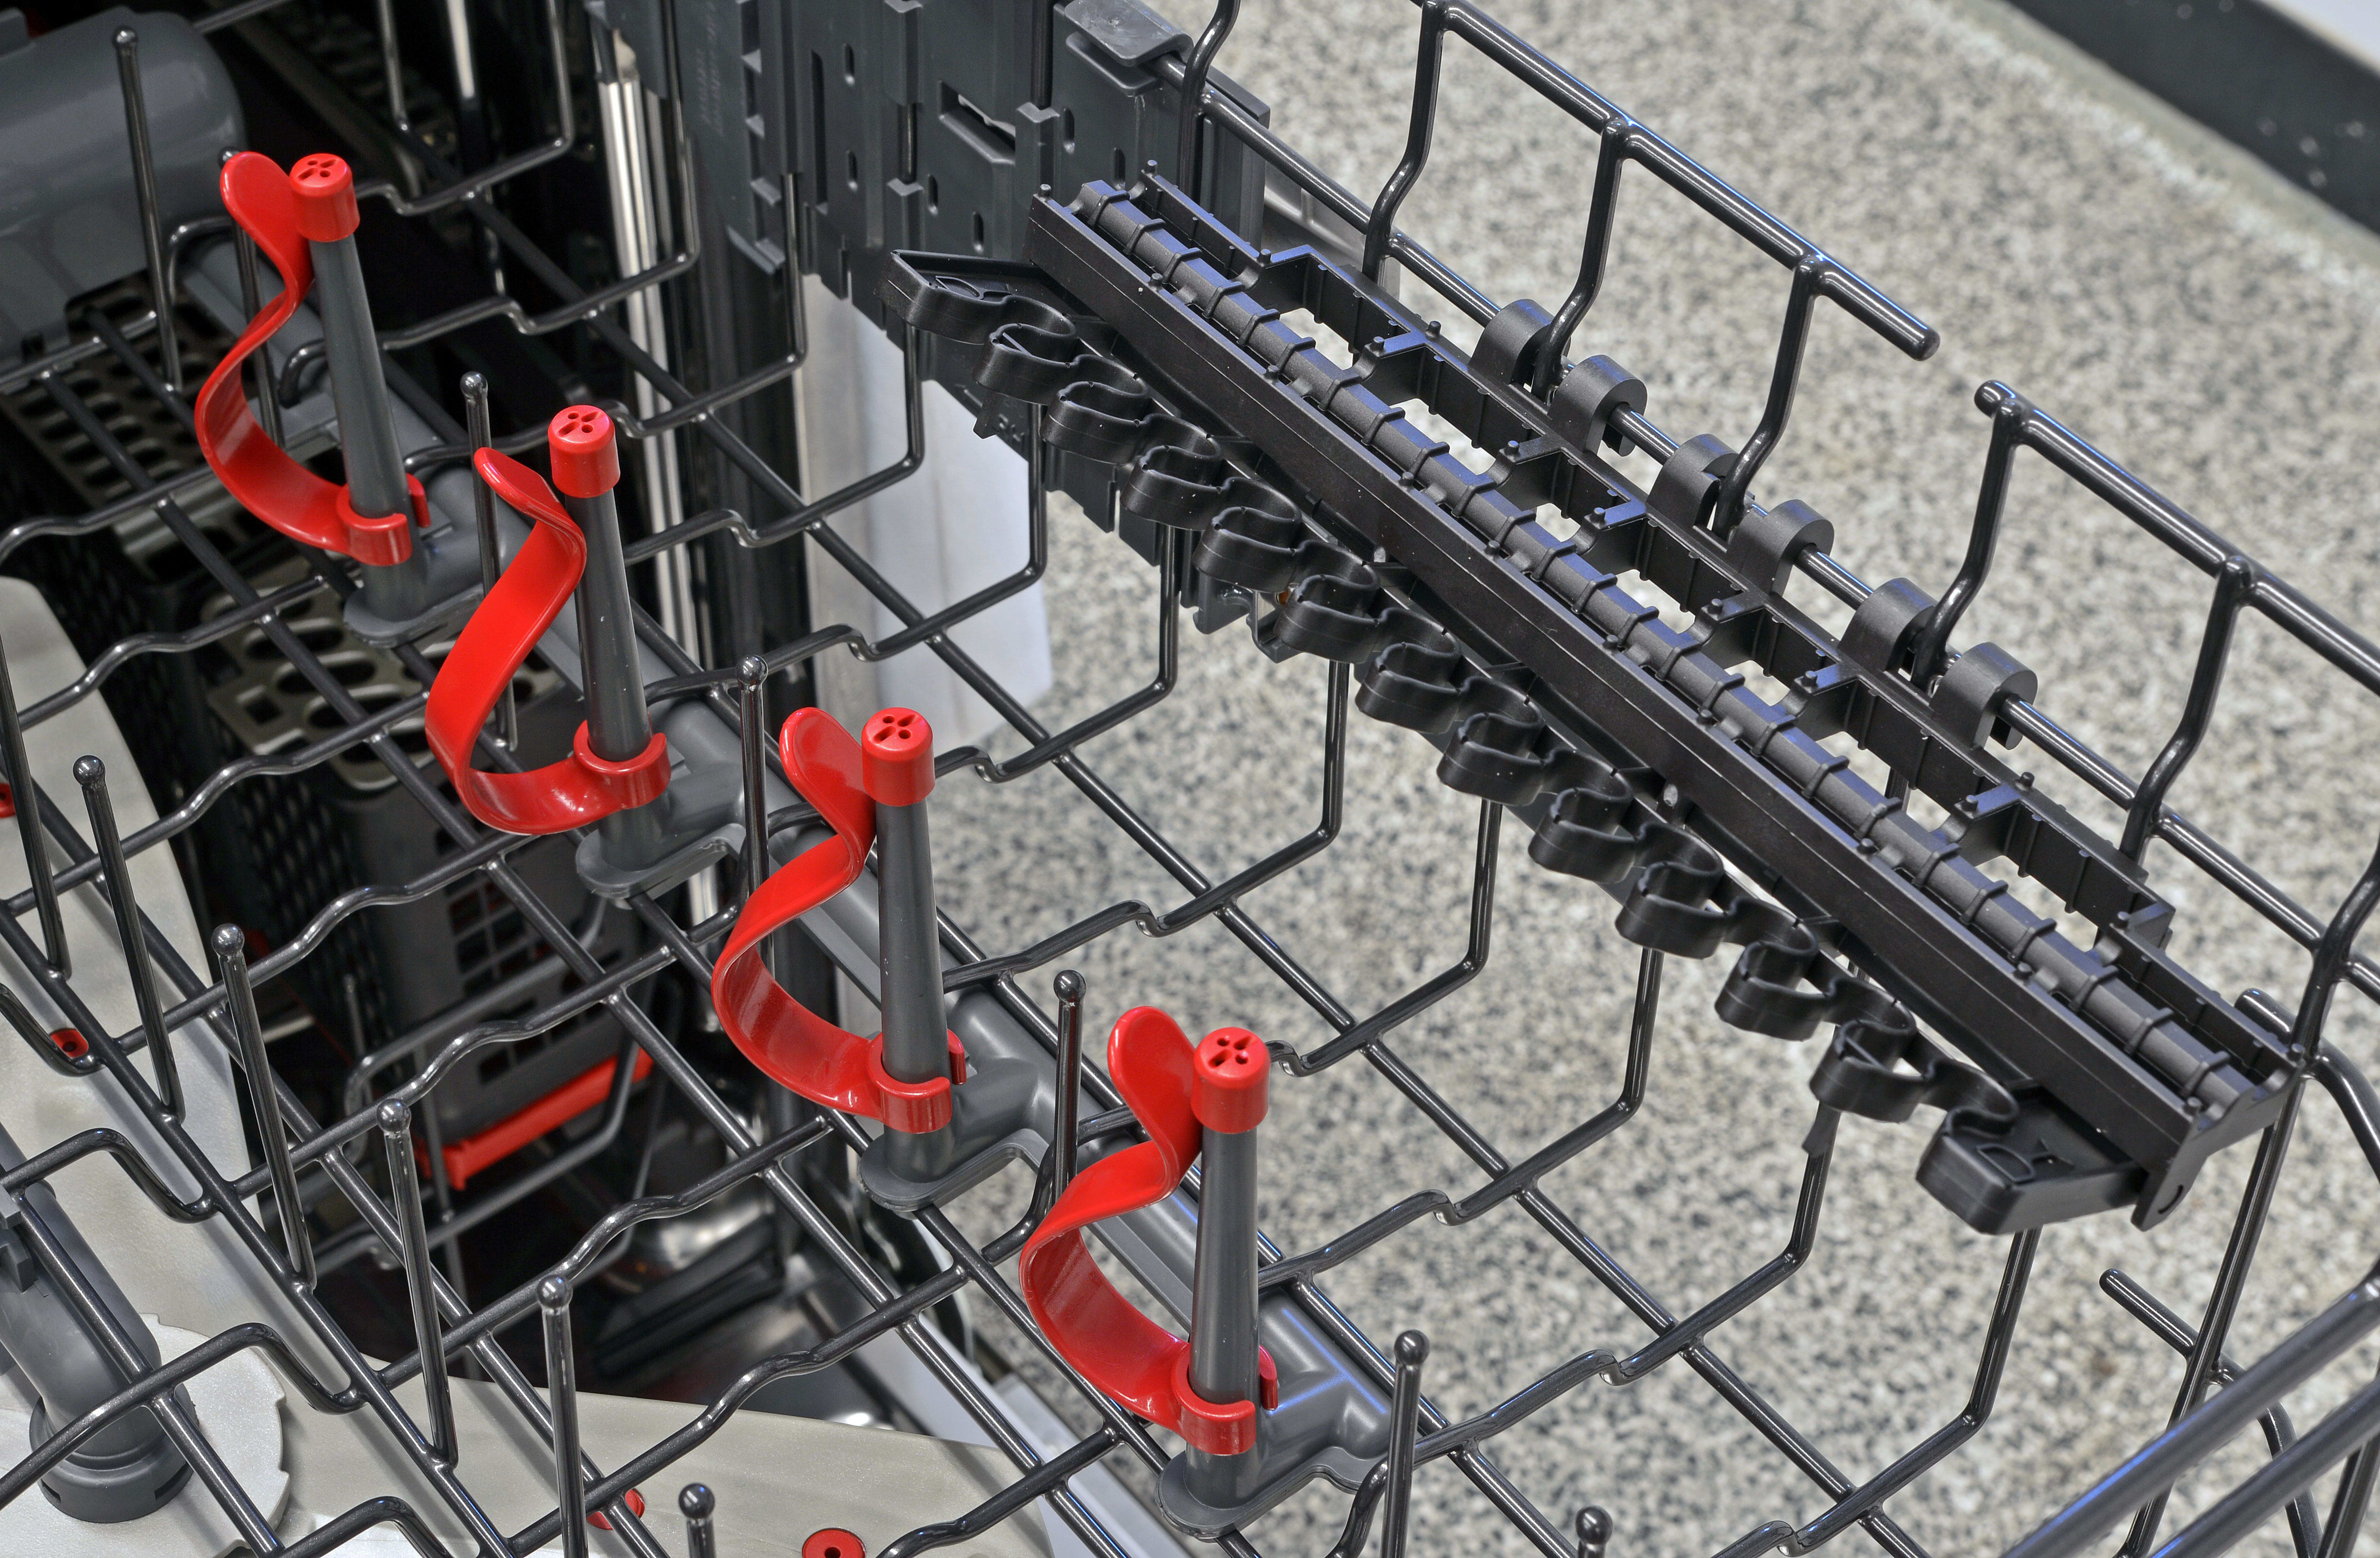 The GE Profile PDT855S's upper rack features four bottle jets, as well as two racks of stemware clips.